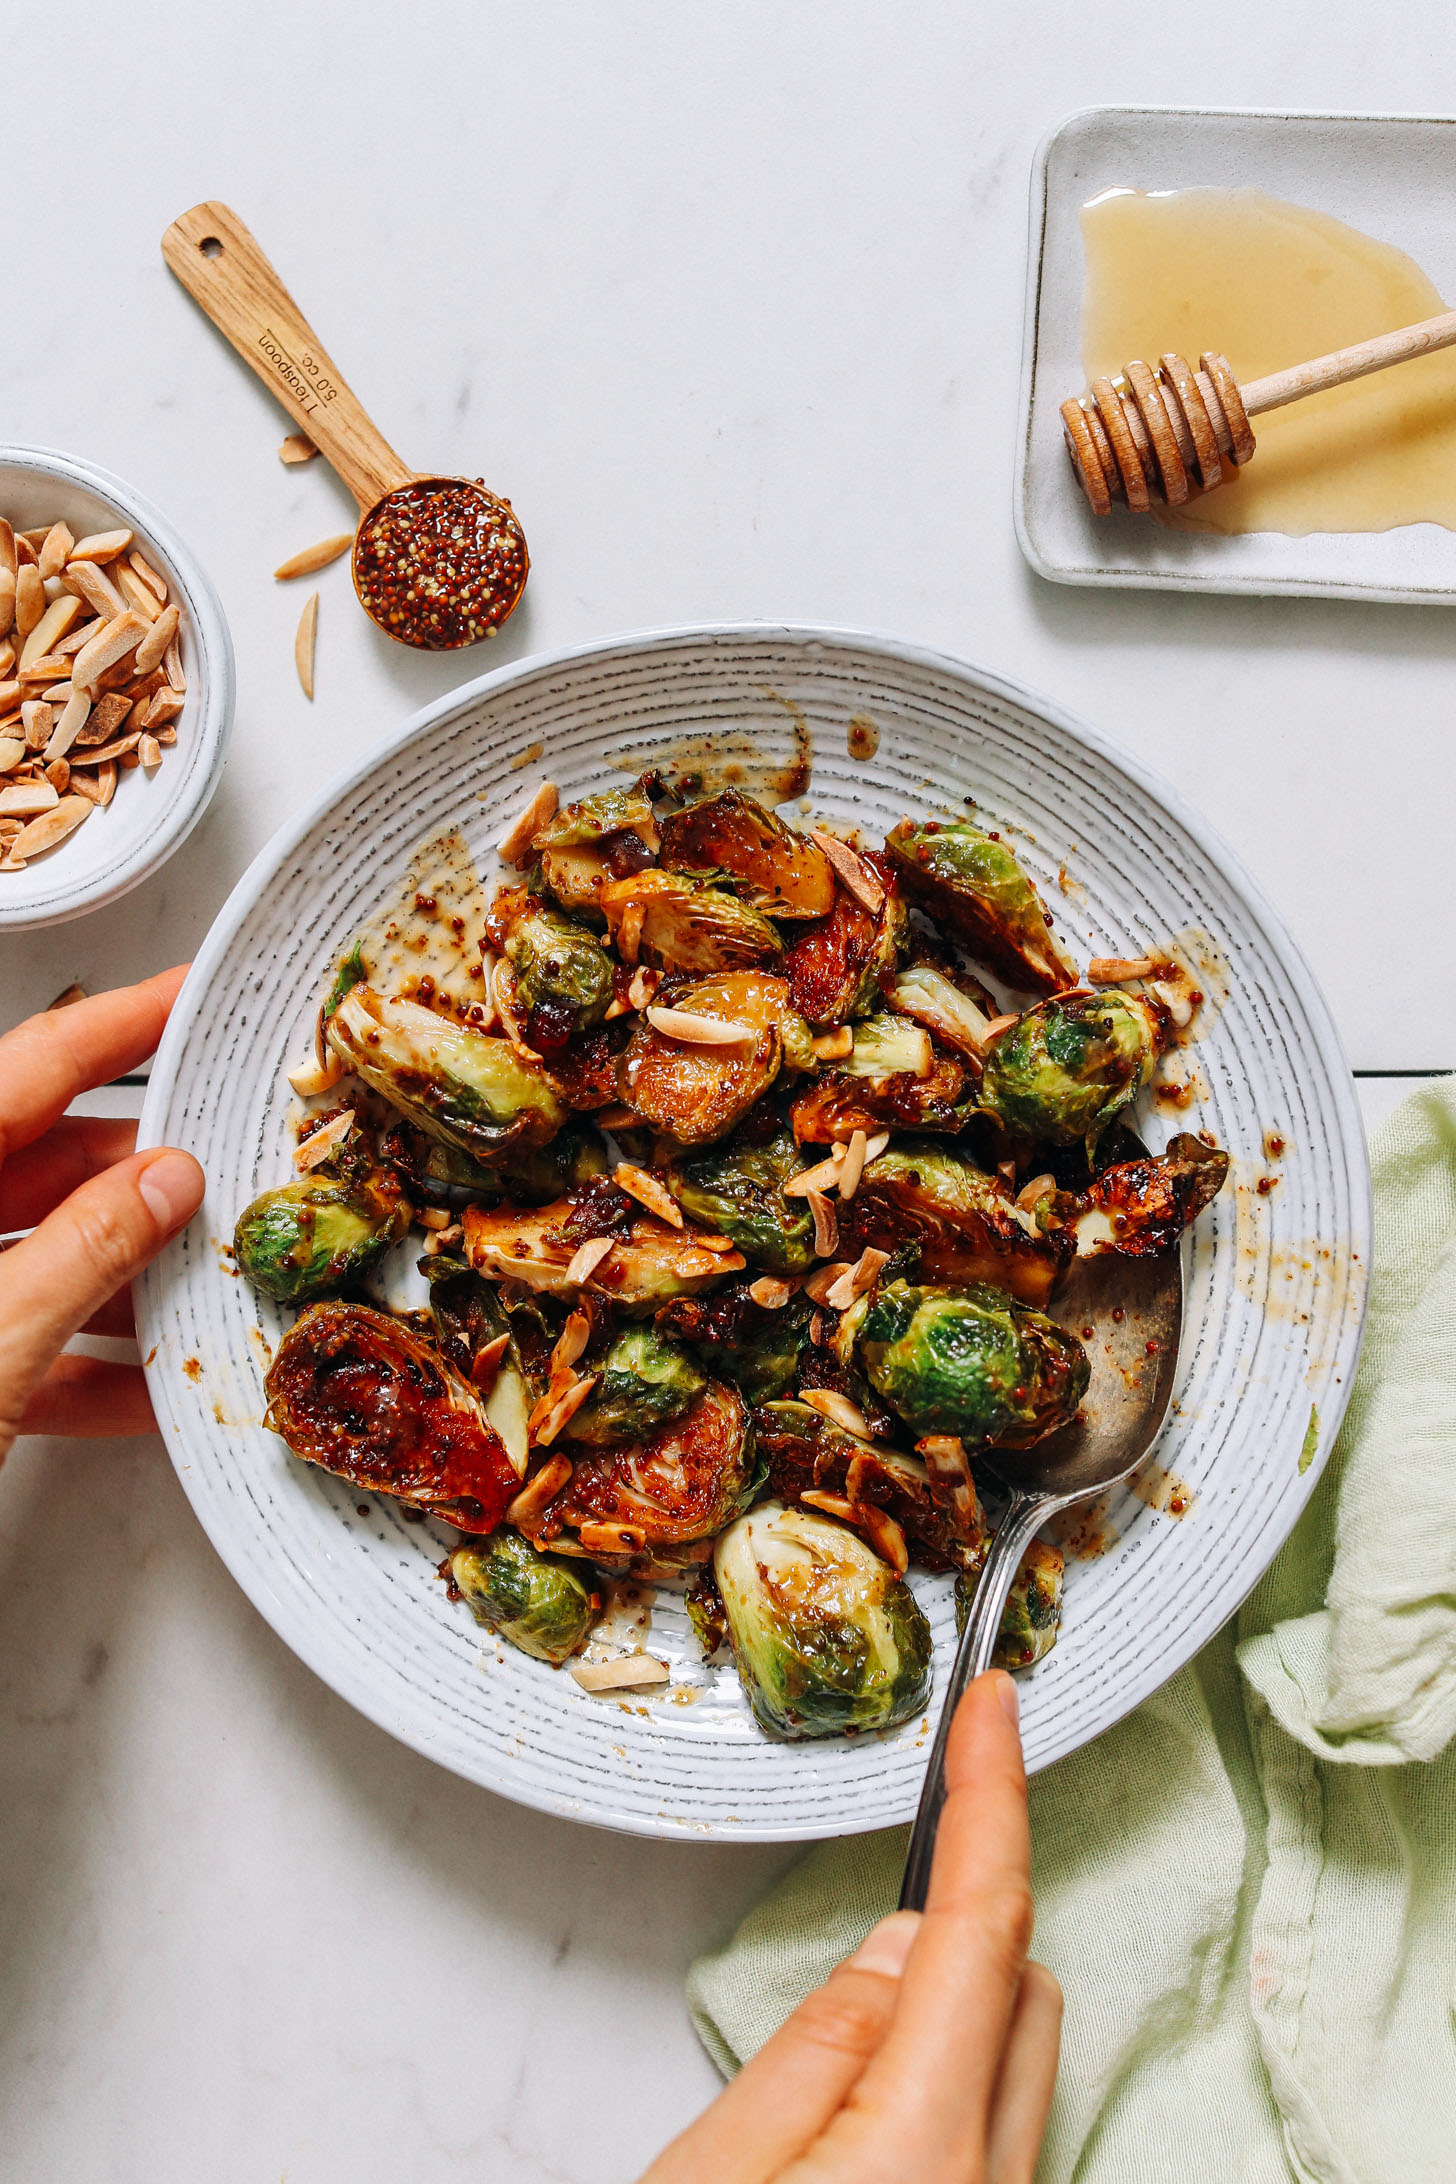 Bowl of Roasted Brussels with honey mustard glaze and toasted almonds